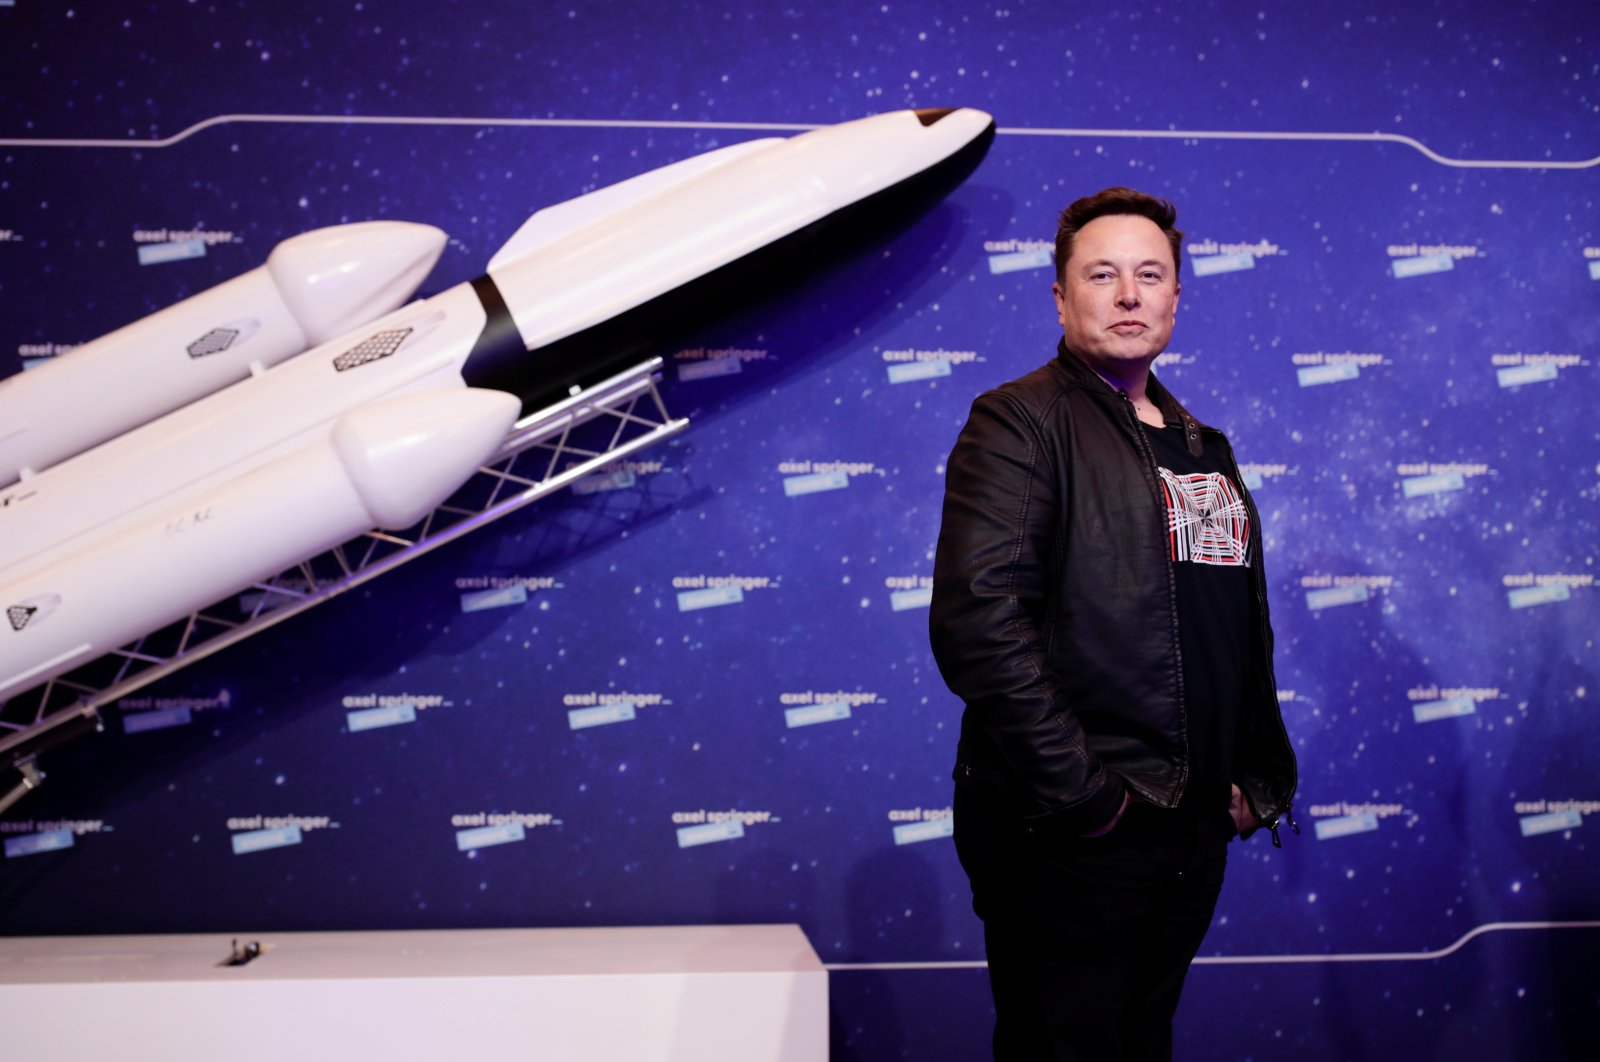 SpaceX owner and Tesla CEO Elon Musk poses after arriving on the red carpet for the Axel Springer award, in Berlin, Germany, 01 December 2020. (EPA Photo)